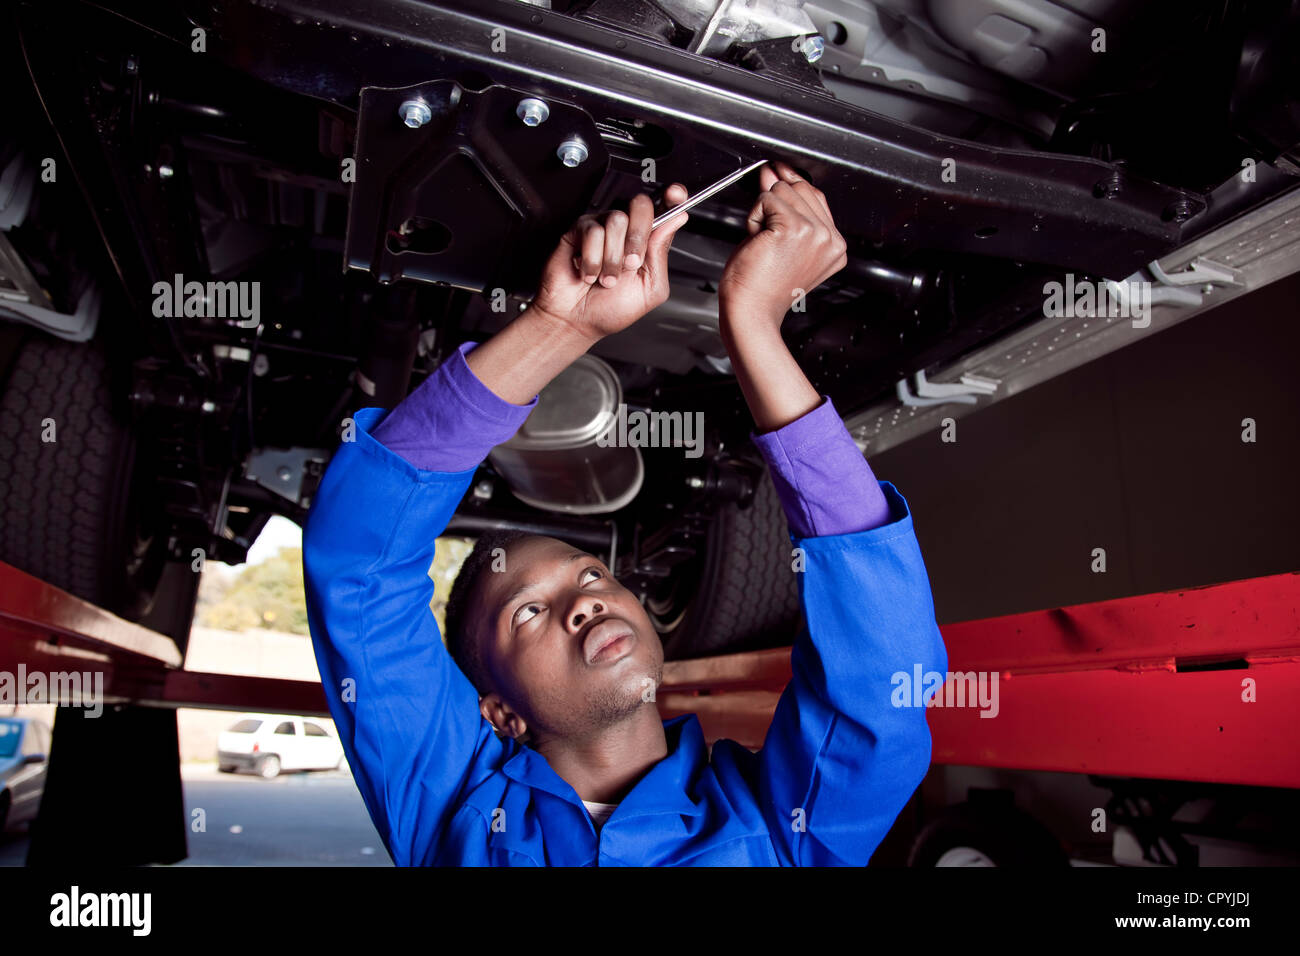 African mechanic standing under a car, working on the engine - Stock Image